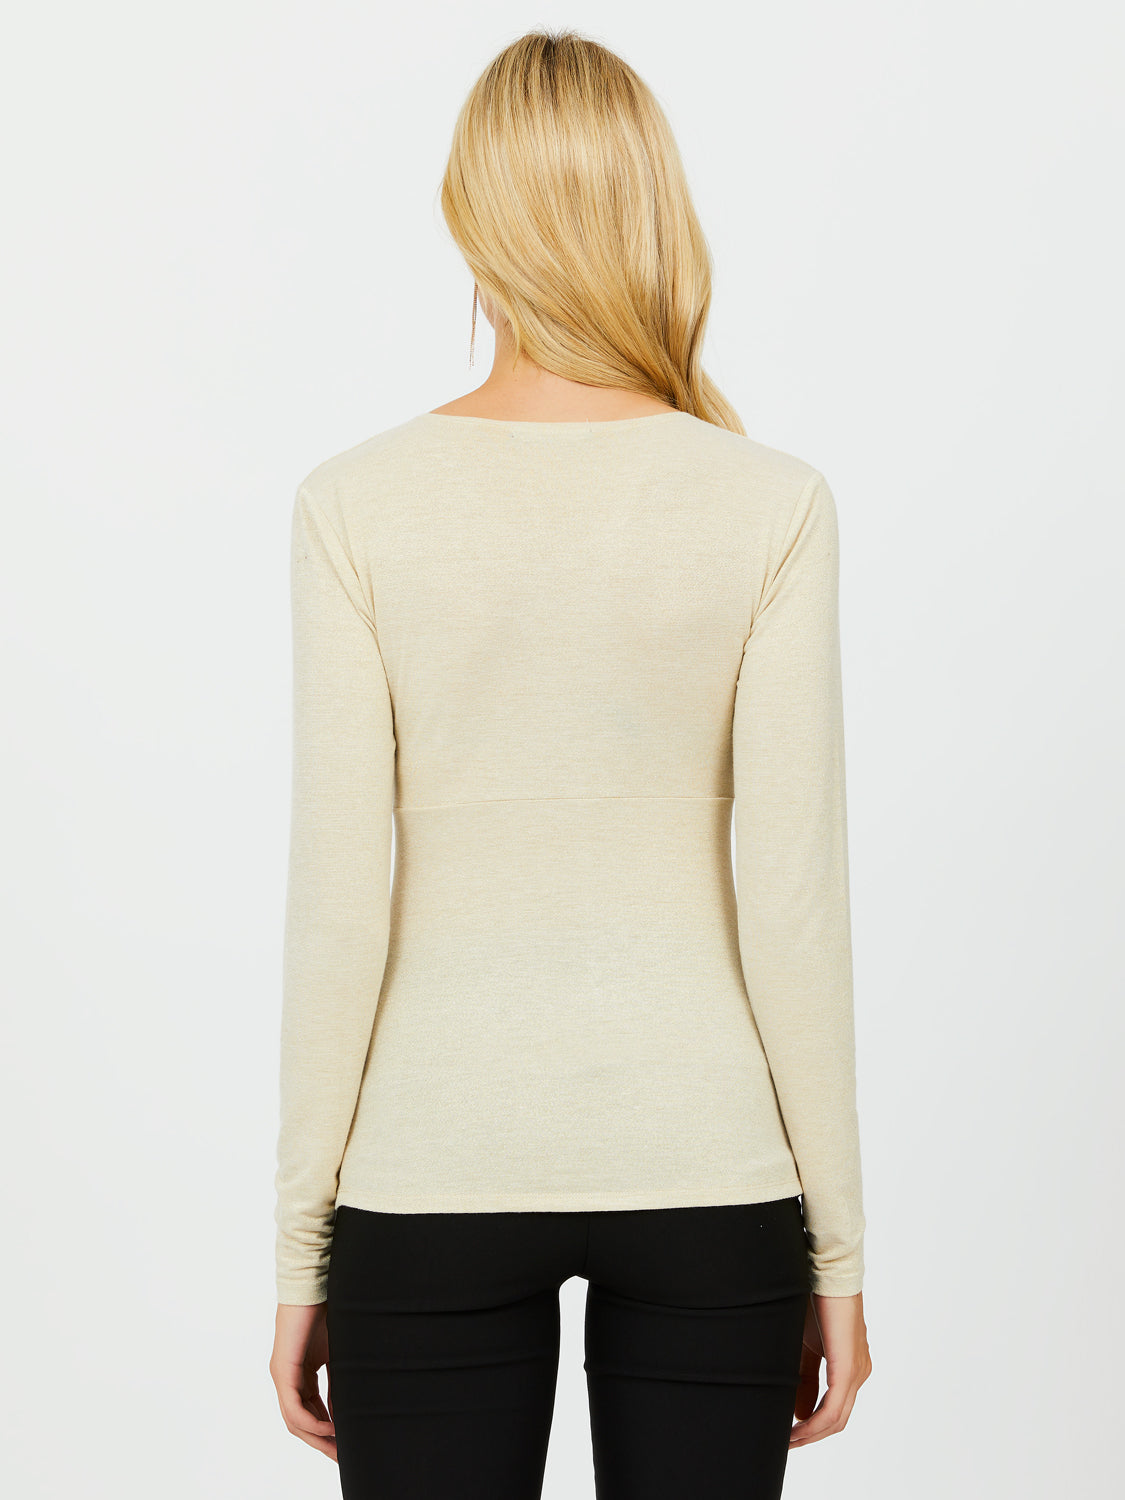 Knot Detail Sweater Knit Top